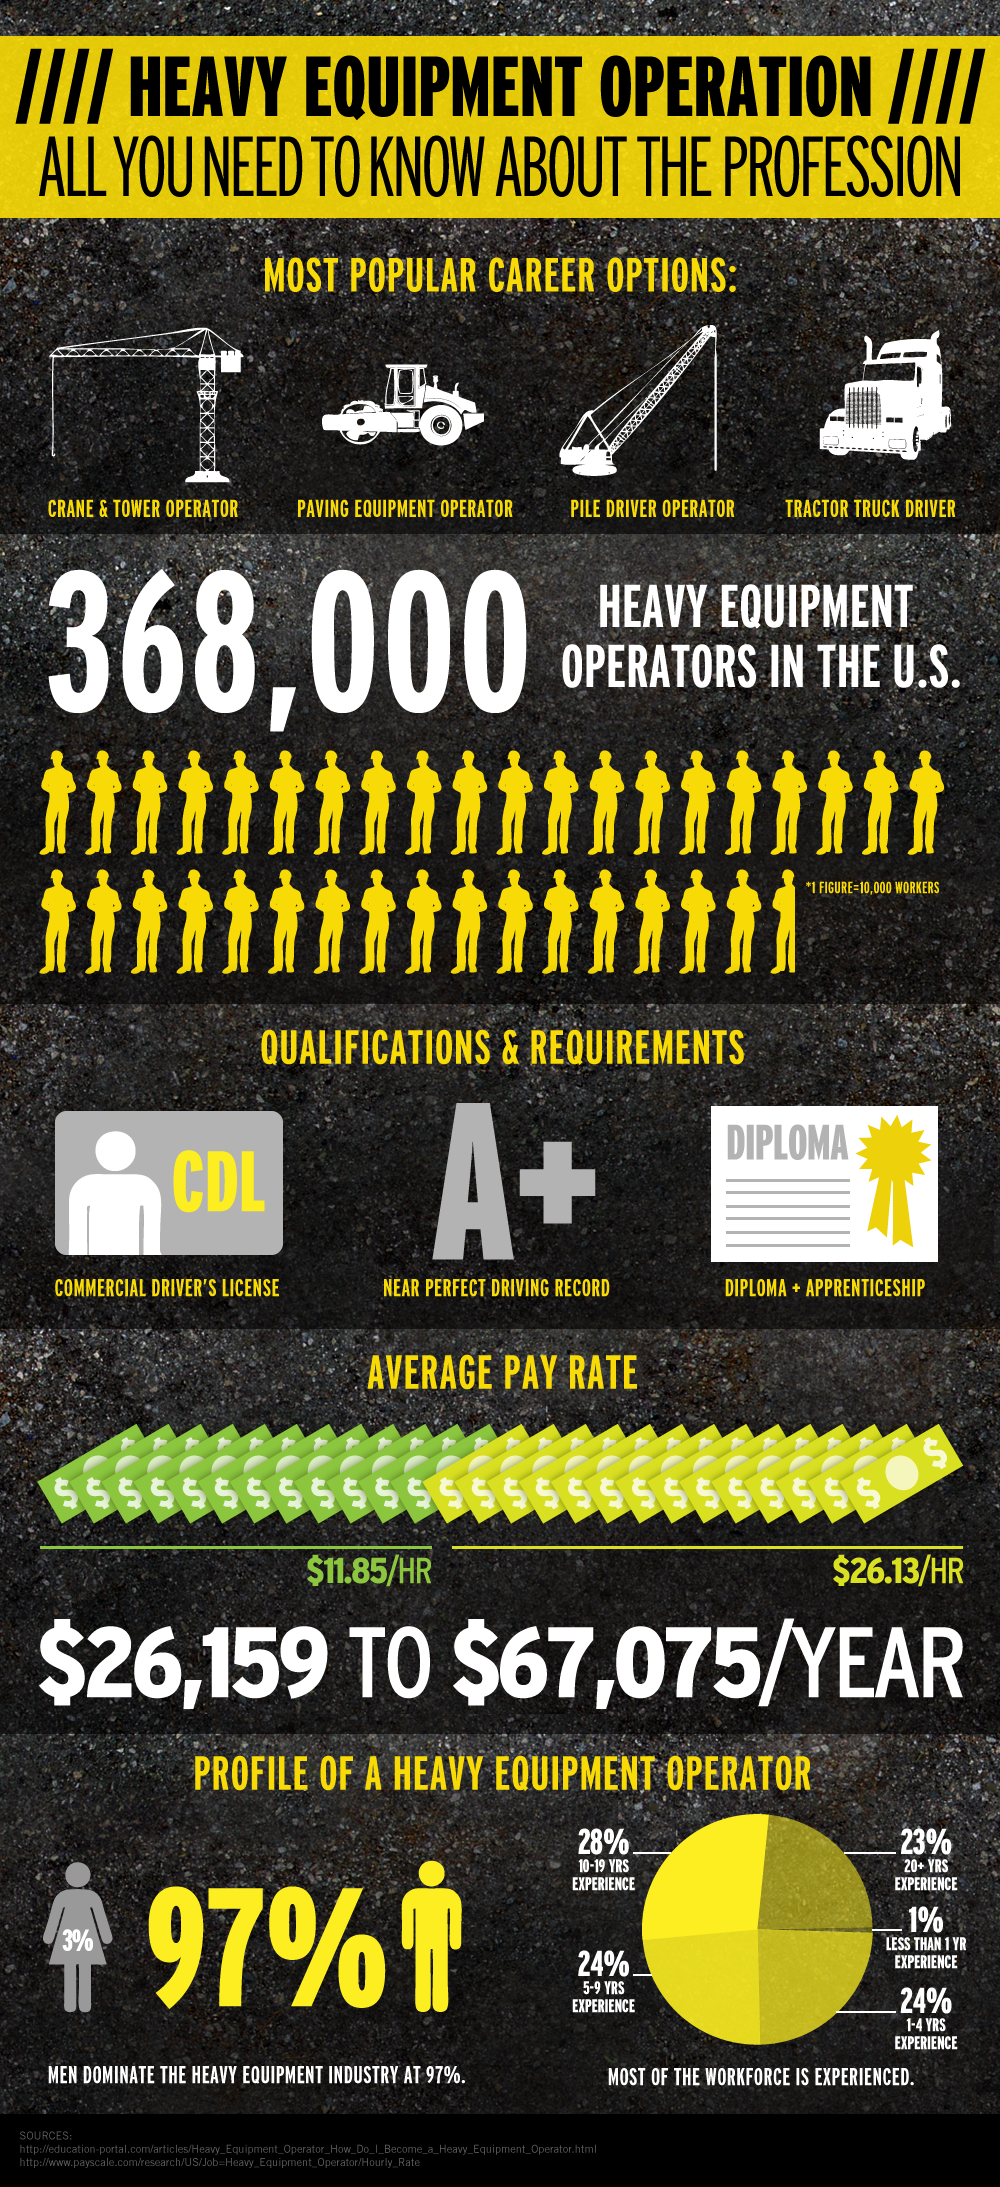 Heavy Equipment Operation Infographic For Levi I Say They Have